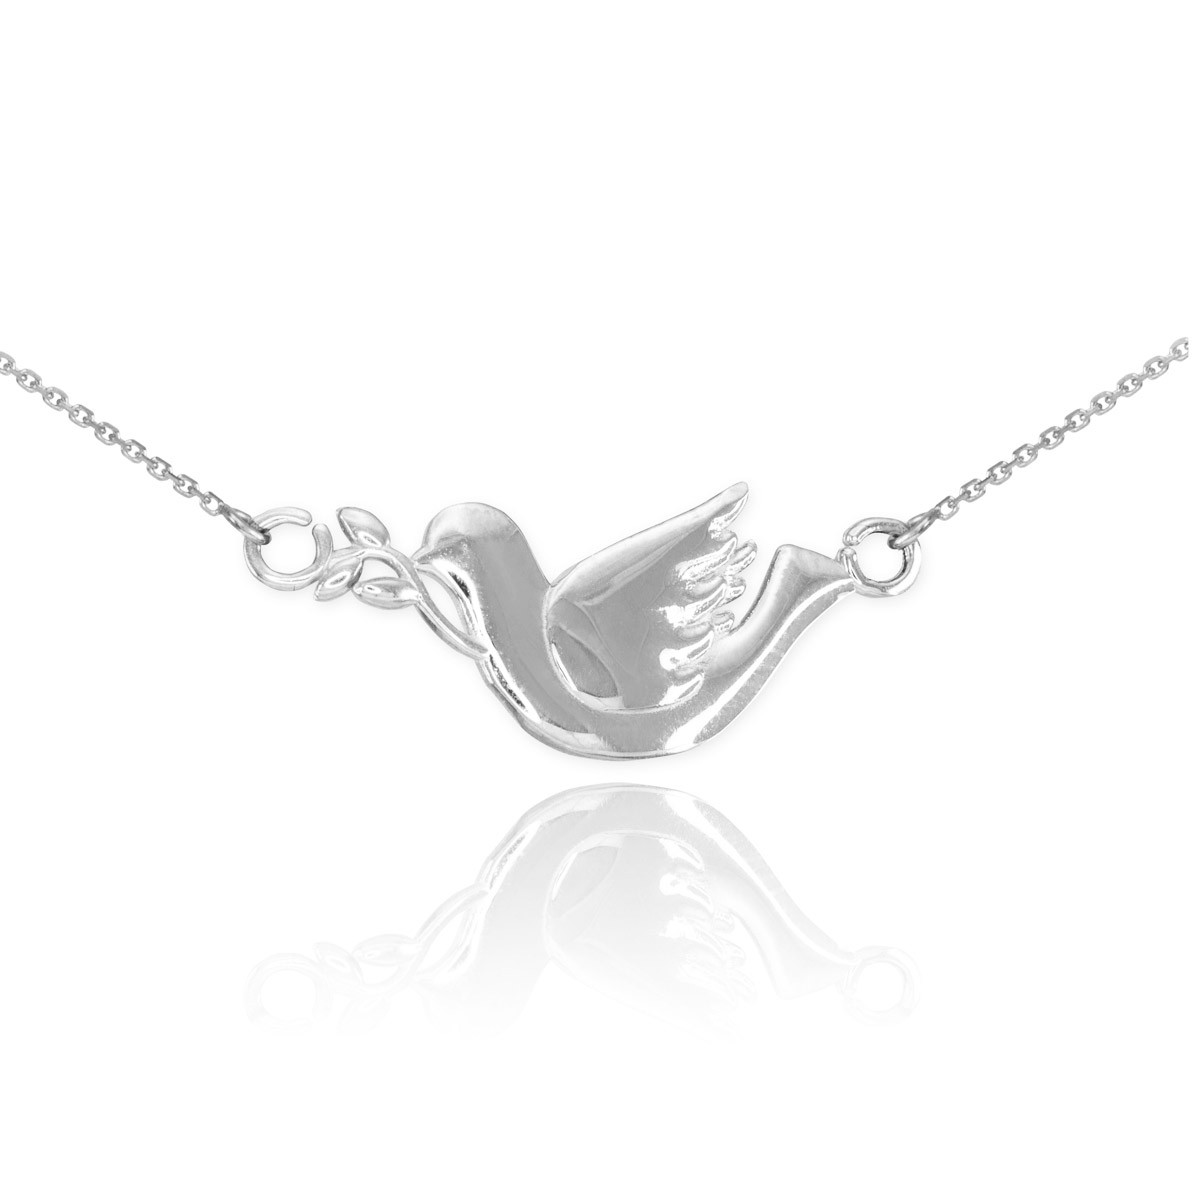 Dove pendant necklace in sterling silver gold boutique pendant necklace in solid 925 sterling silver gb58383s 52 instock httpsgoldboutiquedove pendant necklace in sterling silver gb58383s mozeypictures Images